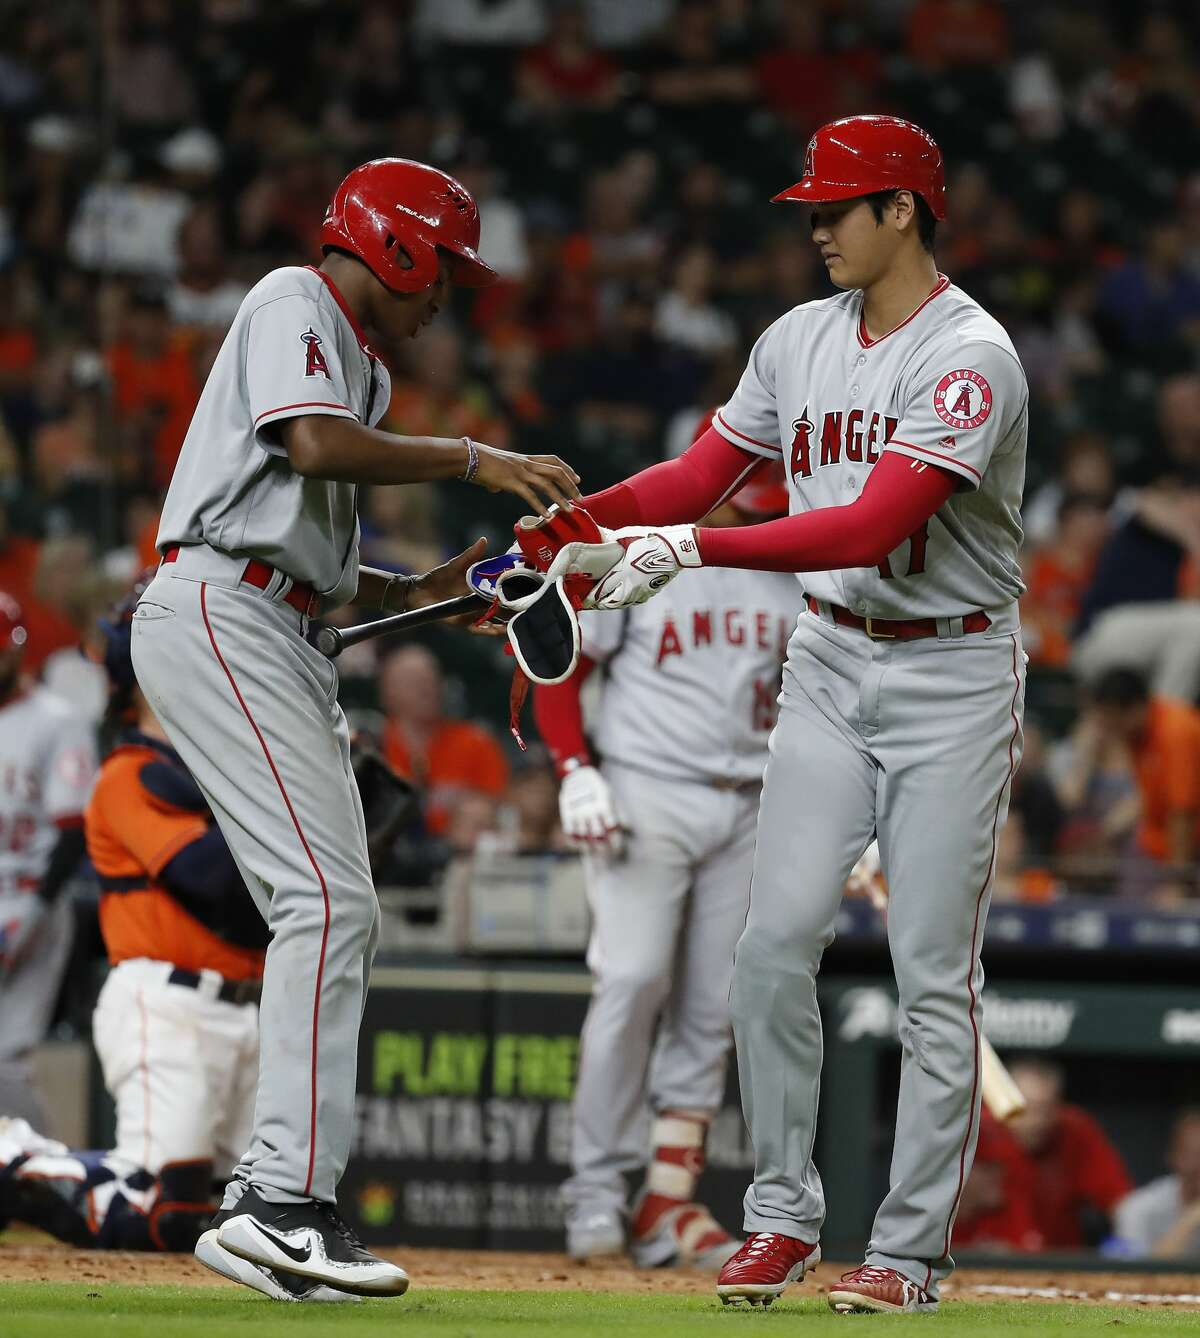 Los Angeles Angels Shohei Ohtani (17) hands his gear to the bat boy as he walked during the ninth inning of an MLB baseball game at Minute Maid Park, Friday, August 31, 2018, in Houston.